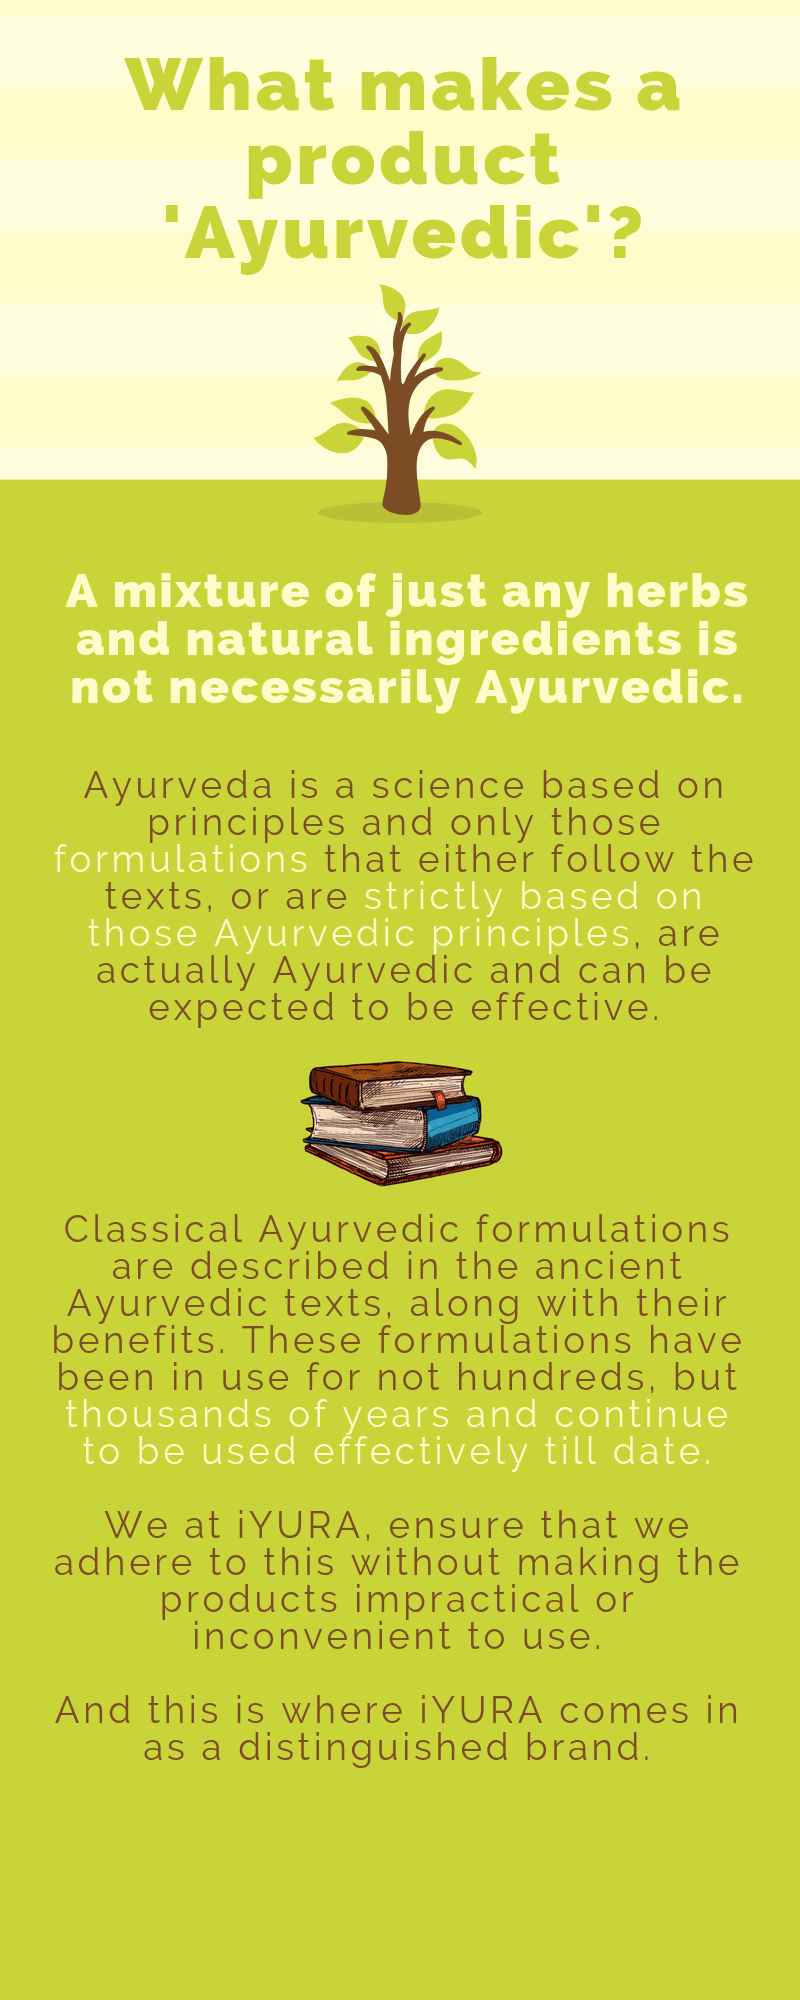 What makes a product Ayurvedic?